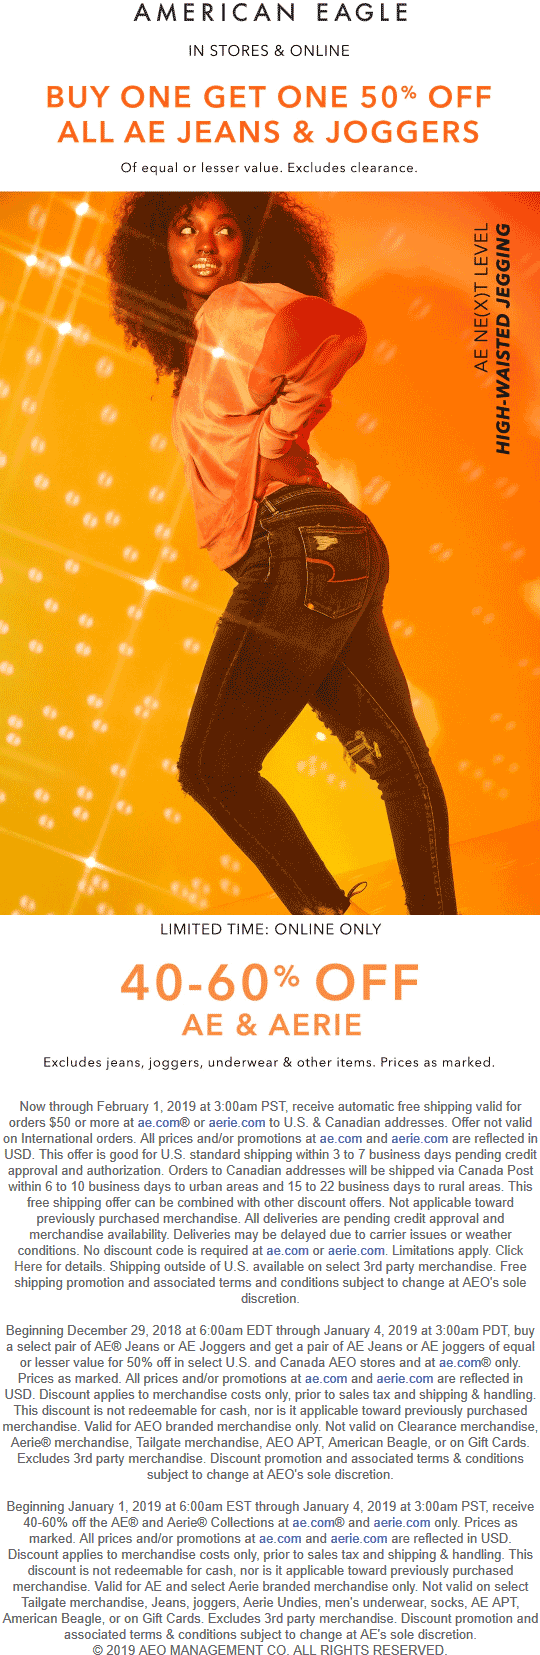 American Eagle Coupon October 2019 Second jeans 50% off at American Eagle, ditto online